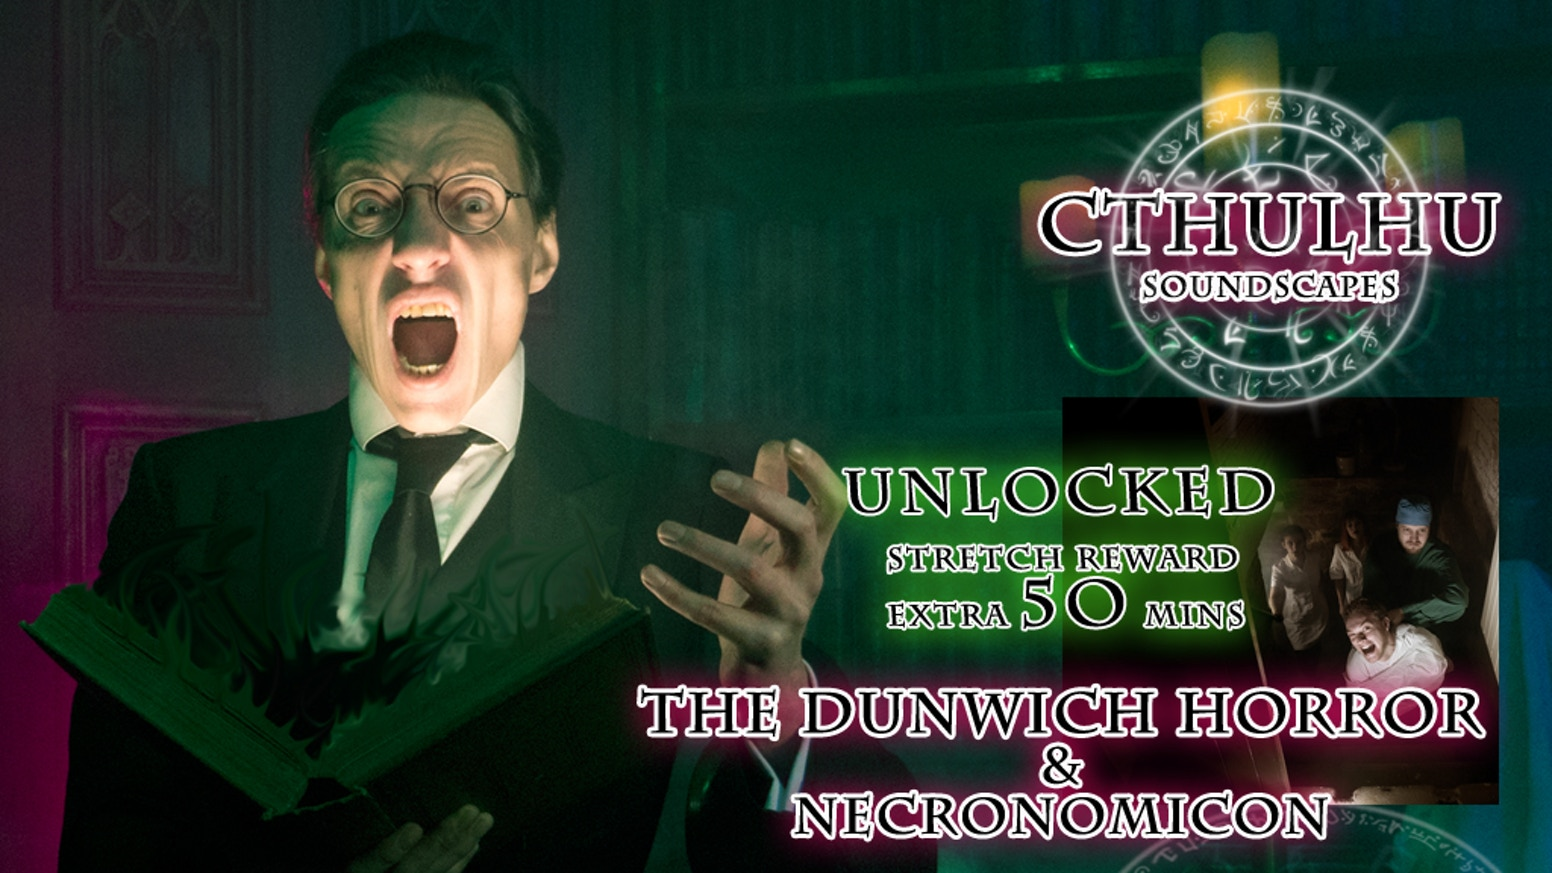 Over 16 Hours of Cthulhu soundscapes to immerse yourselves in during roleplaying, boardgames and LARP.